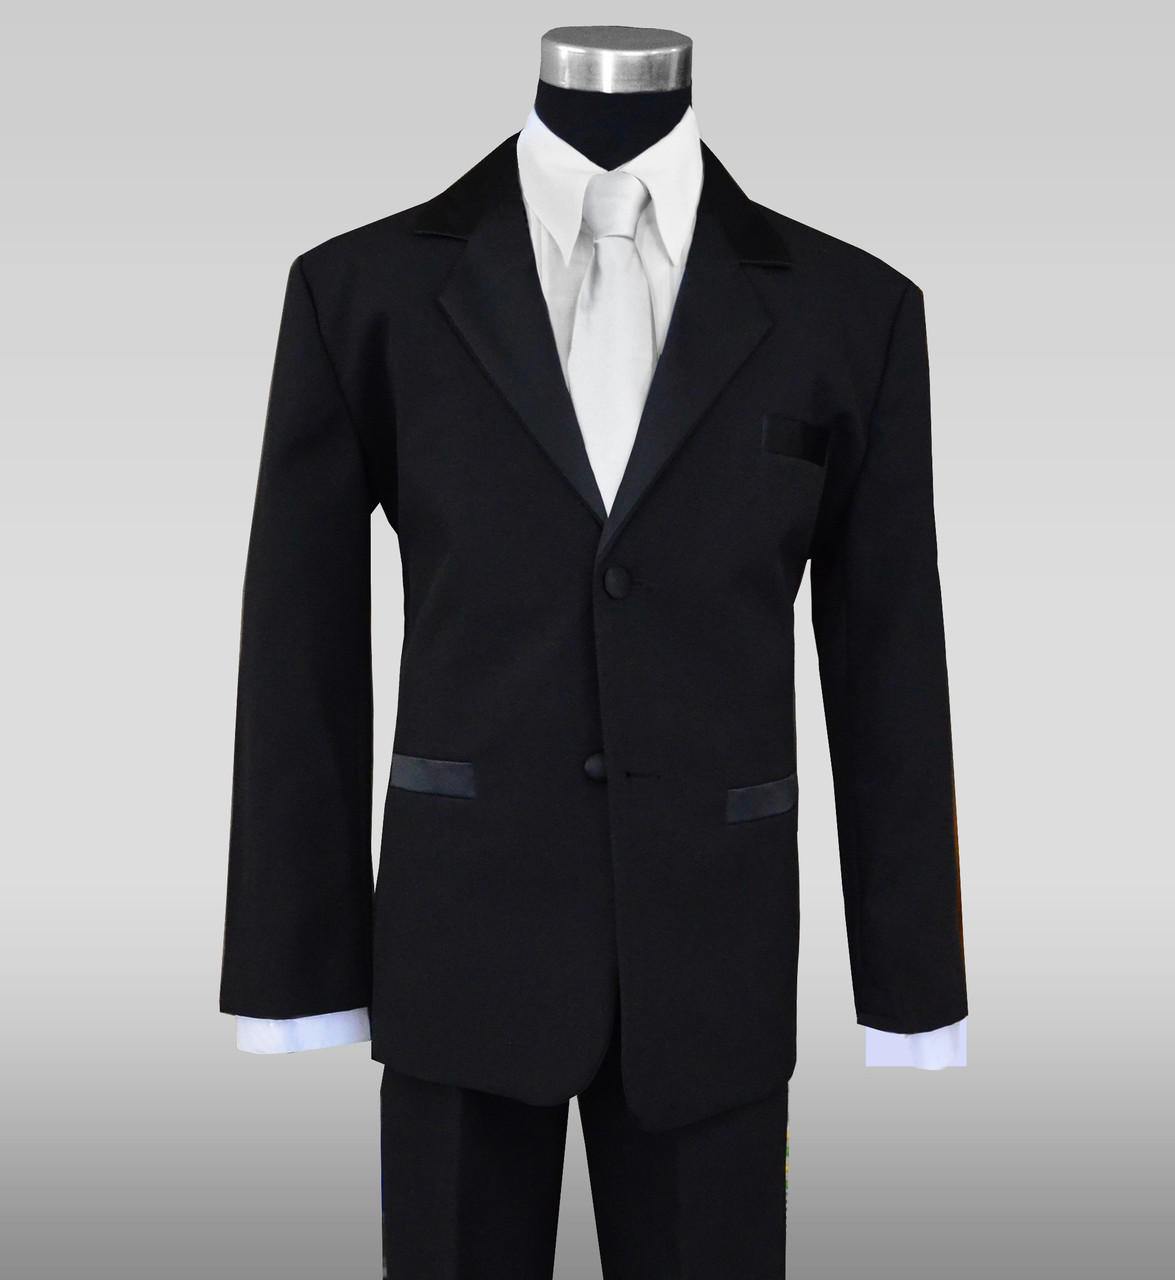 Satin Notch Label Tuxedo For Kids With A Light Silver Neck